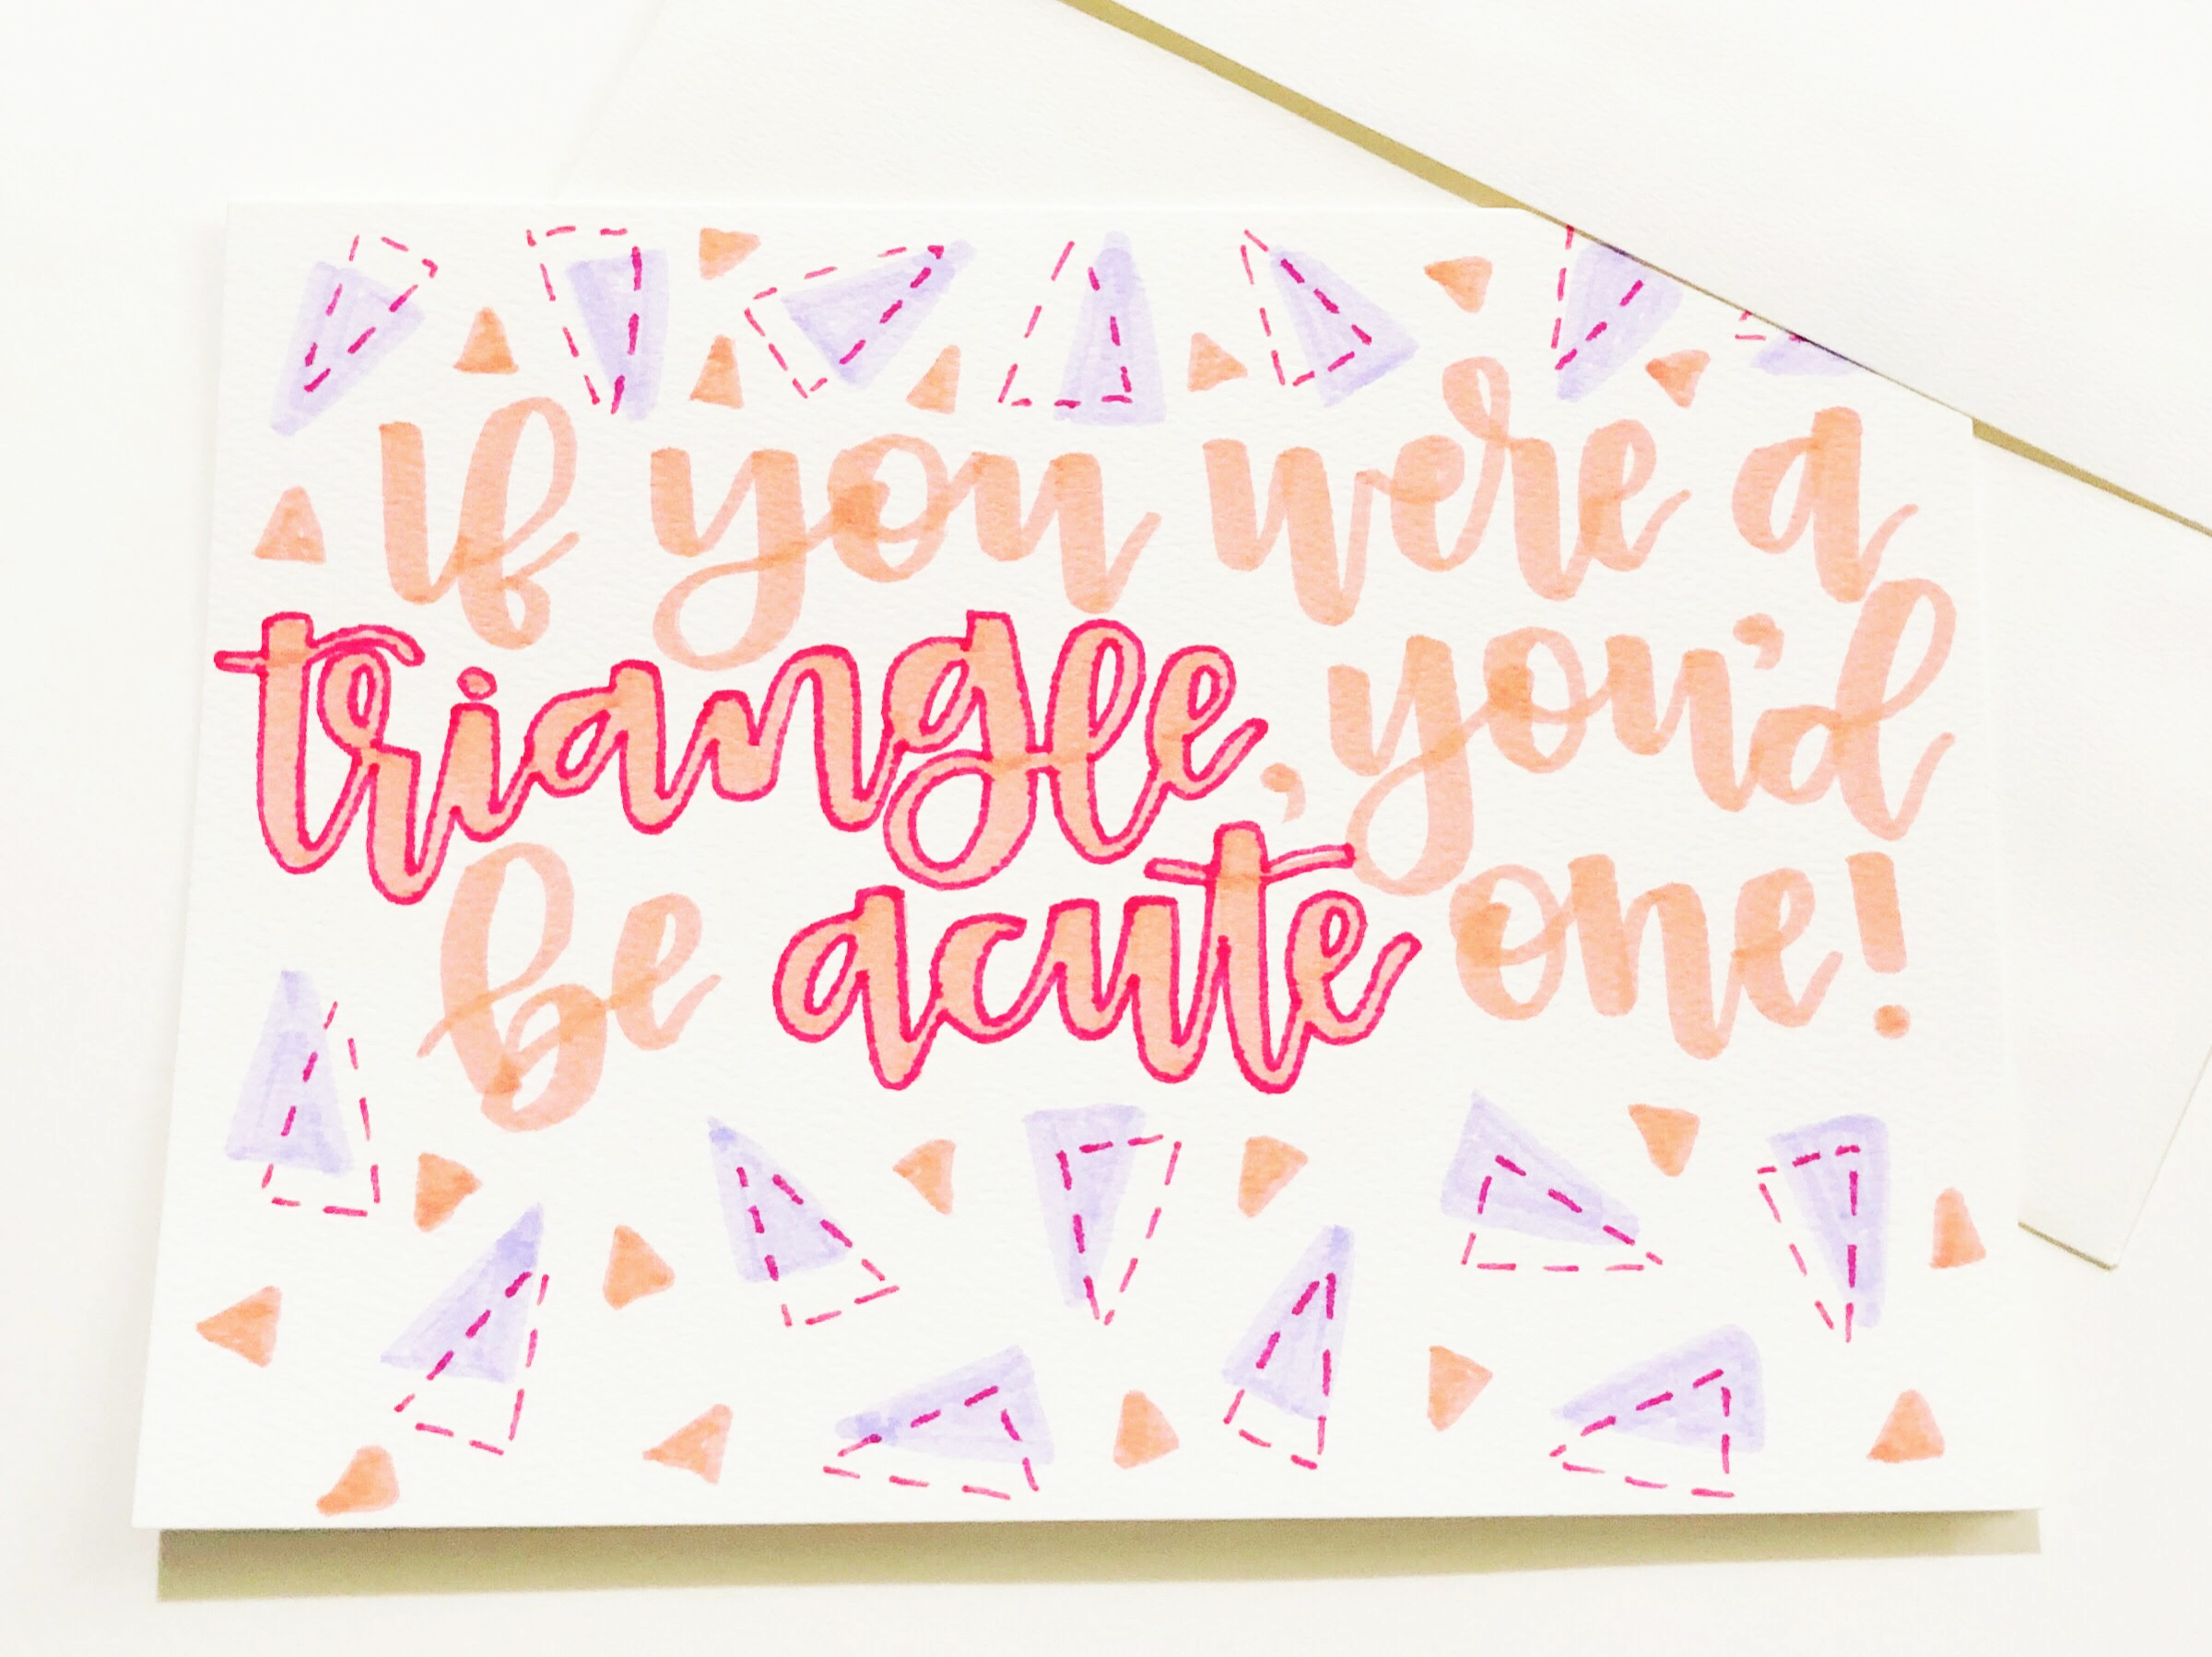 Lettering_Triangle 4x3.jpg